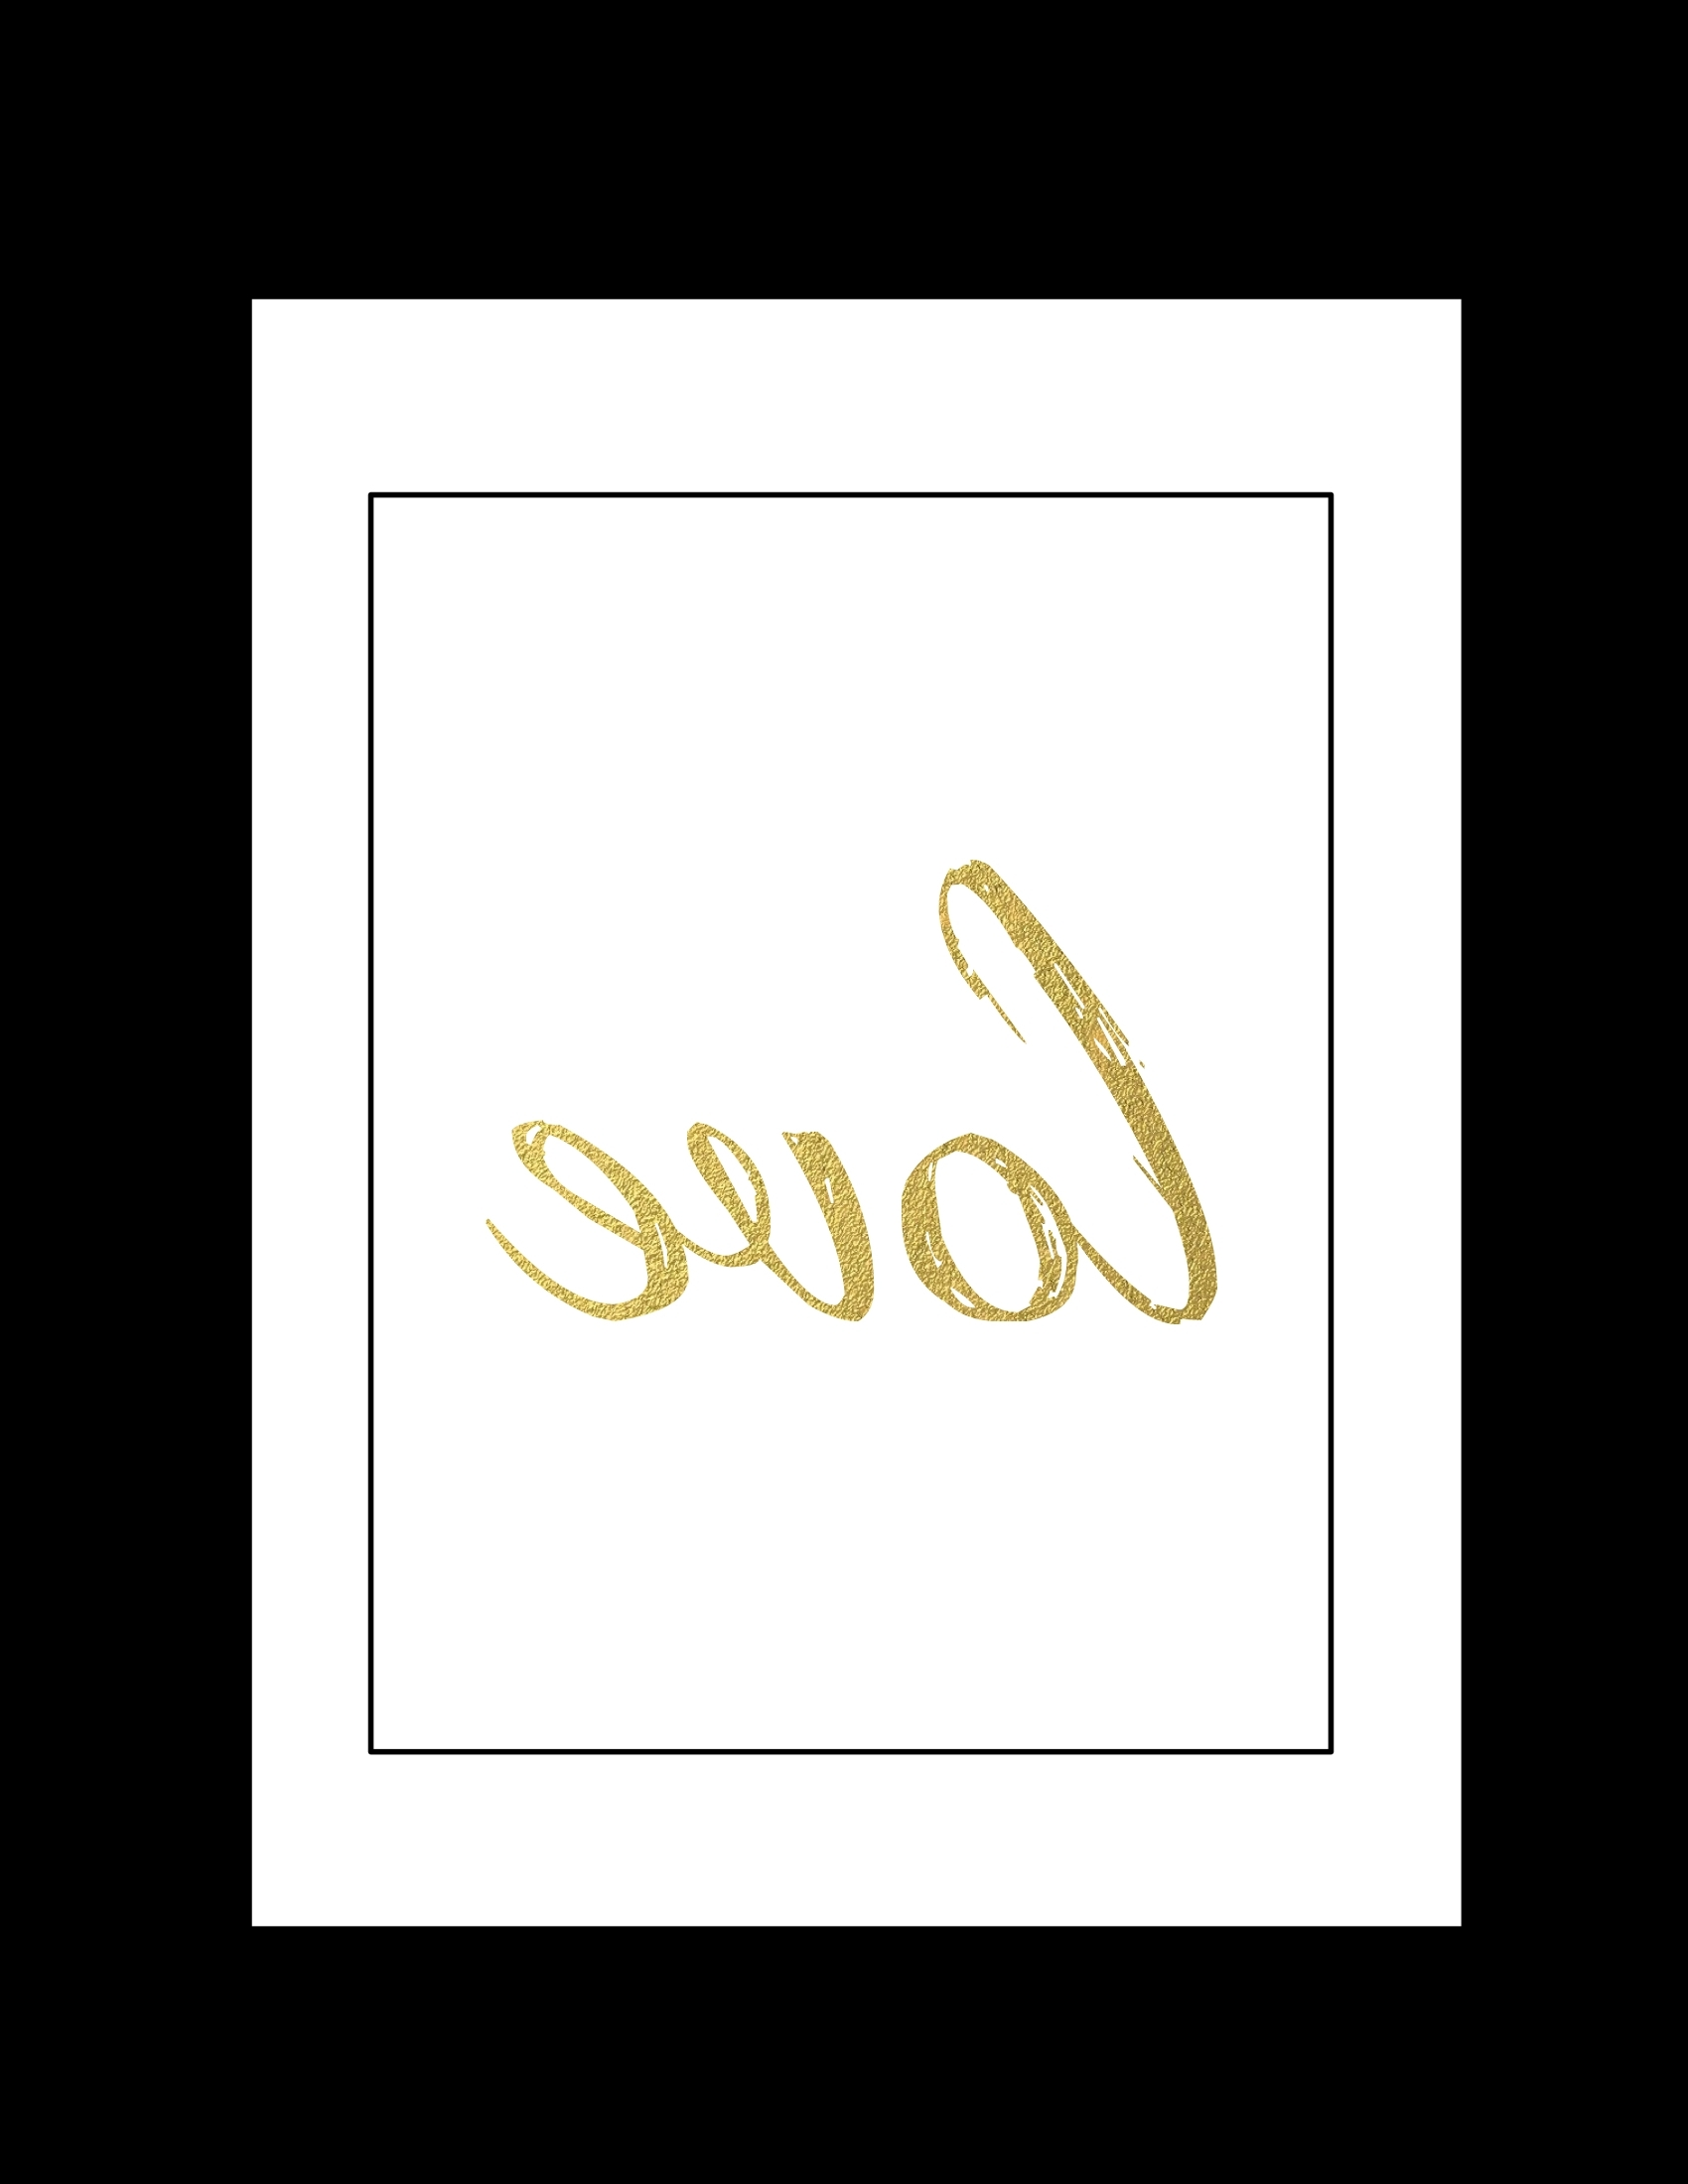 Free Printable Wall Art: Black And Gold Love – Paper Trail Design Intended For Popular Black And Gold Wall Art (View 13 of 15)